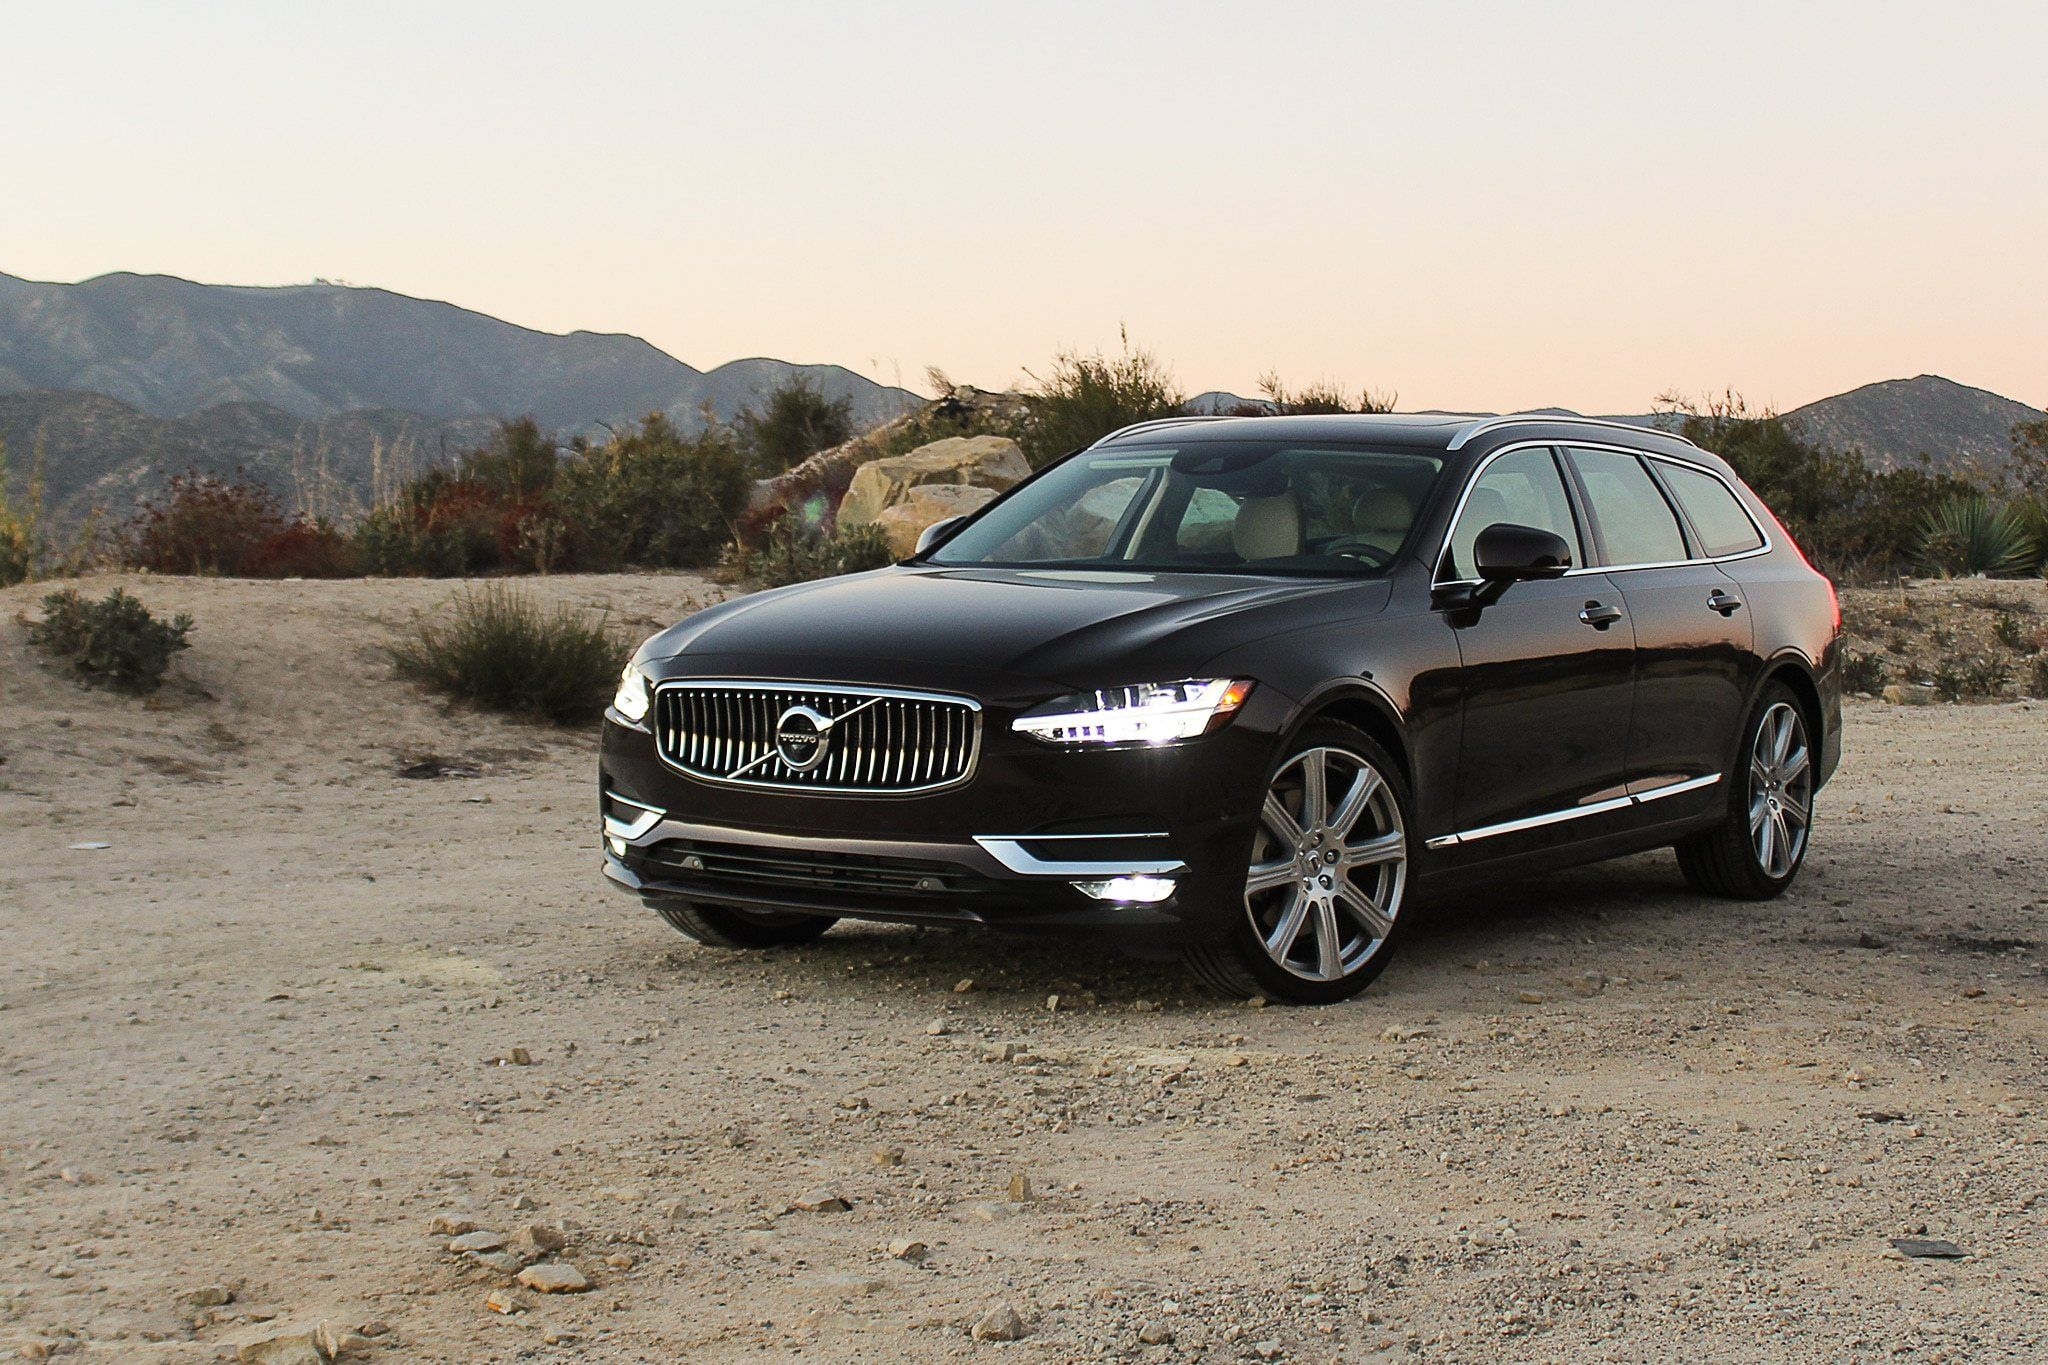 2021 Volvo Xc70 New Generation Wagon Concept and Review